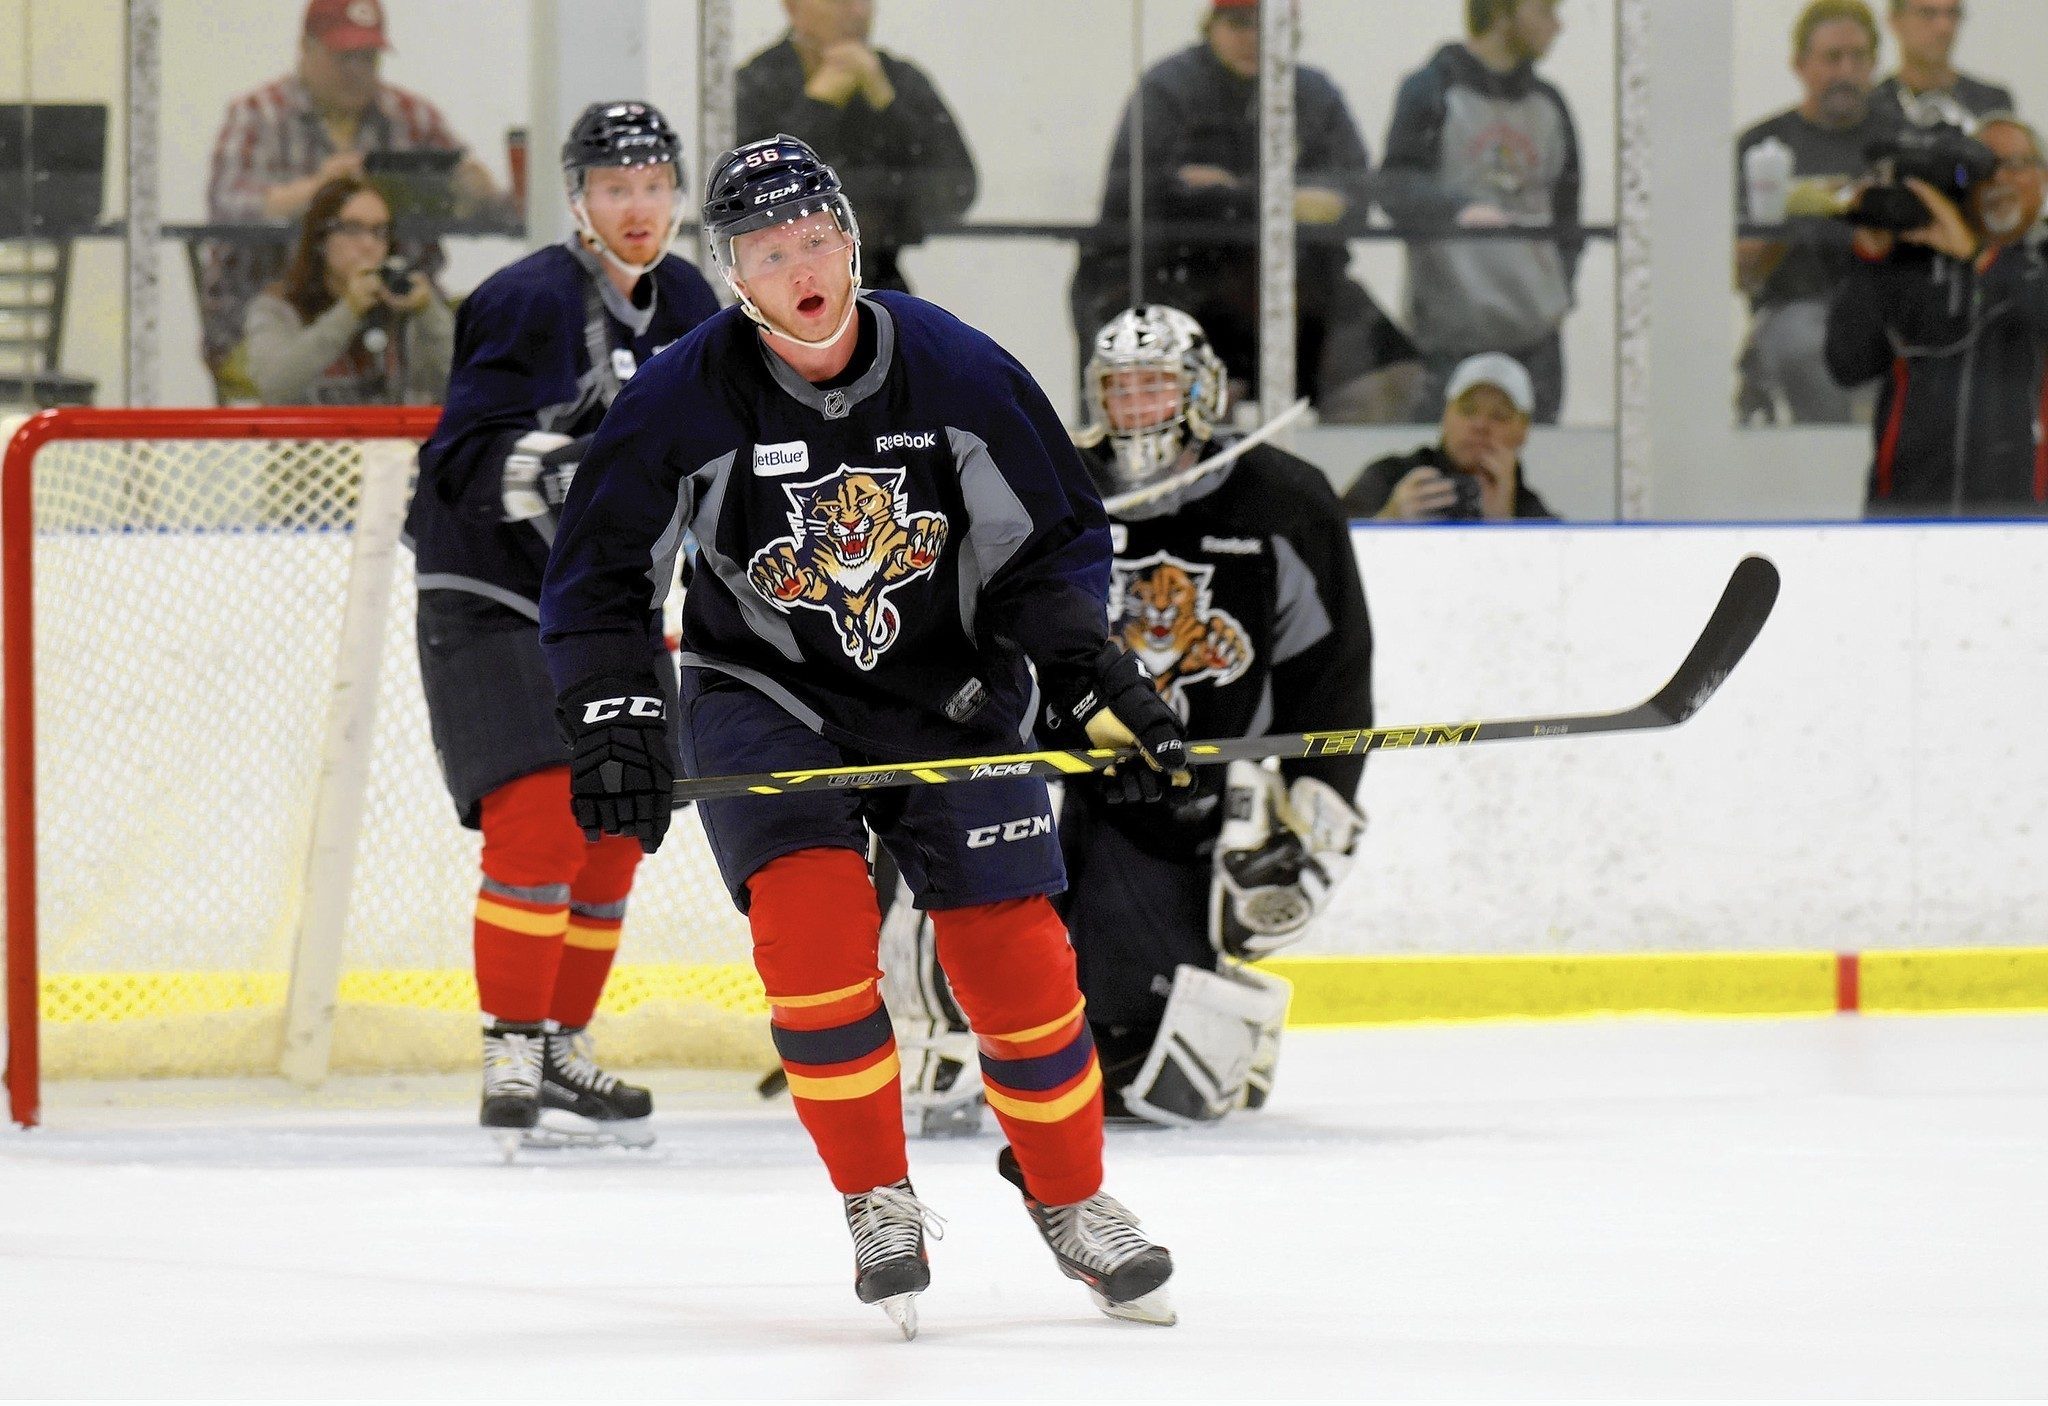 Sfl-panthers-send-matheson-shaw-and-mckegg-back-to-ahl-for-playoff-run-20160427